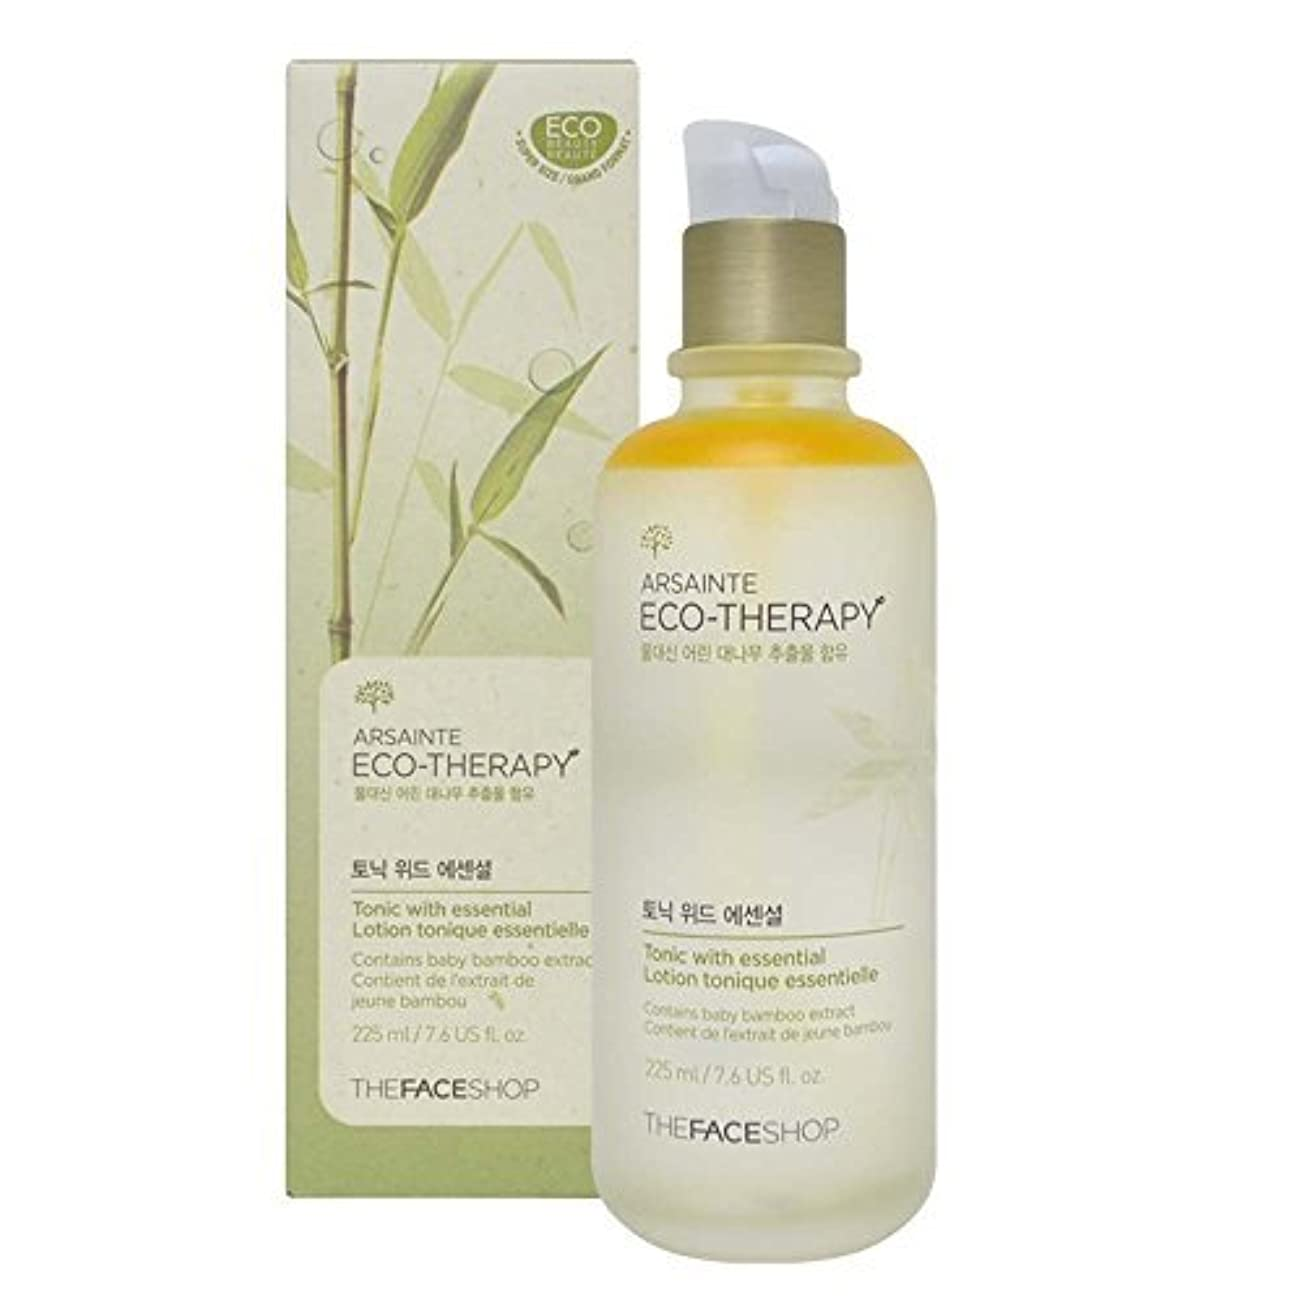 指スティック縮れたThe Face shop Arsainte Ecotheraphy Tonic with essential Big Size 225ml [並行輸入品]